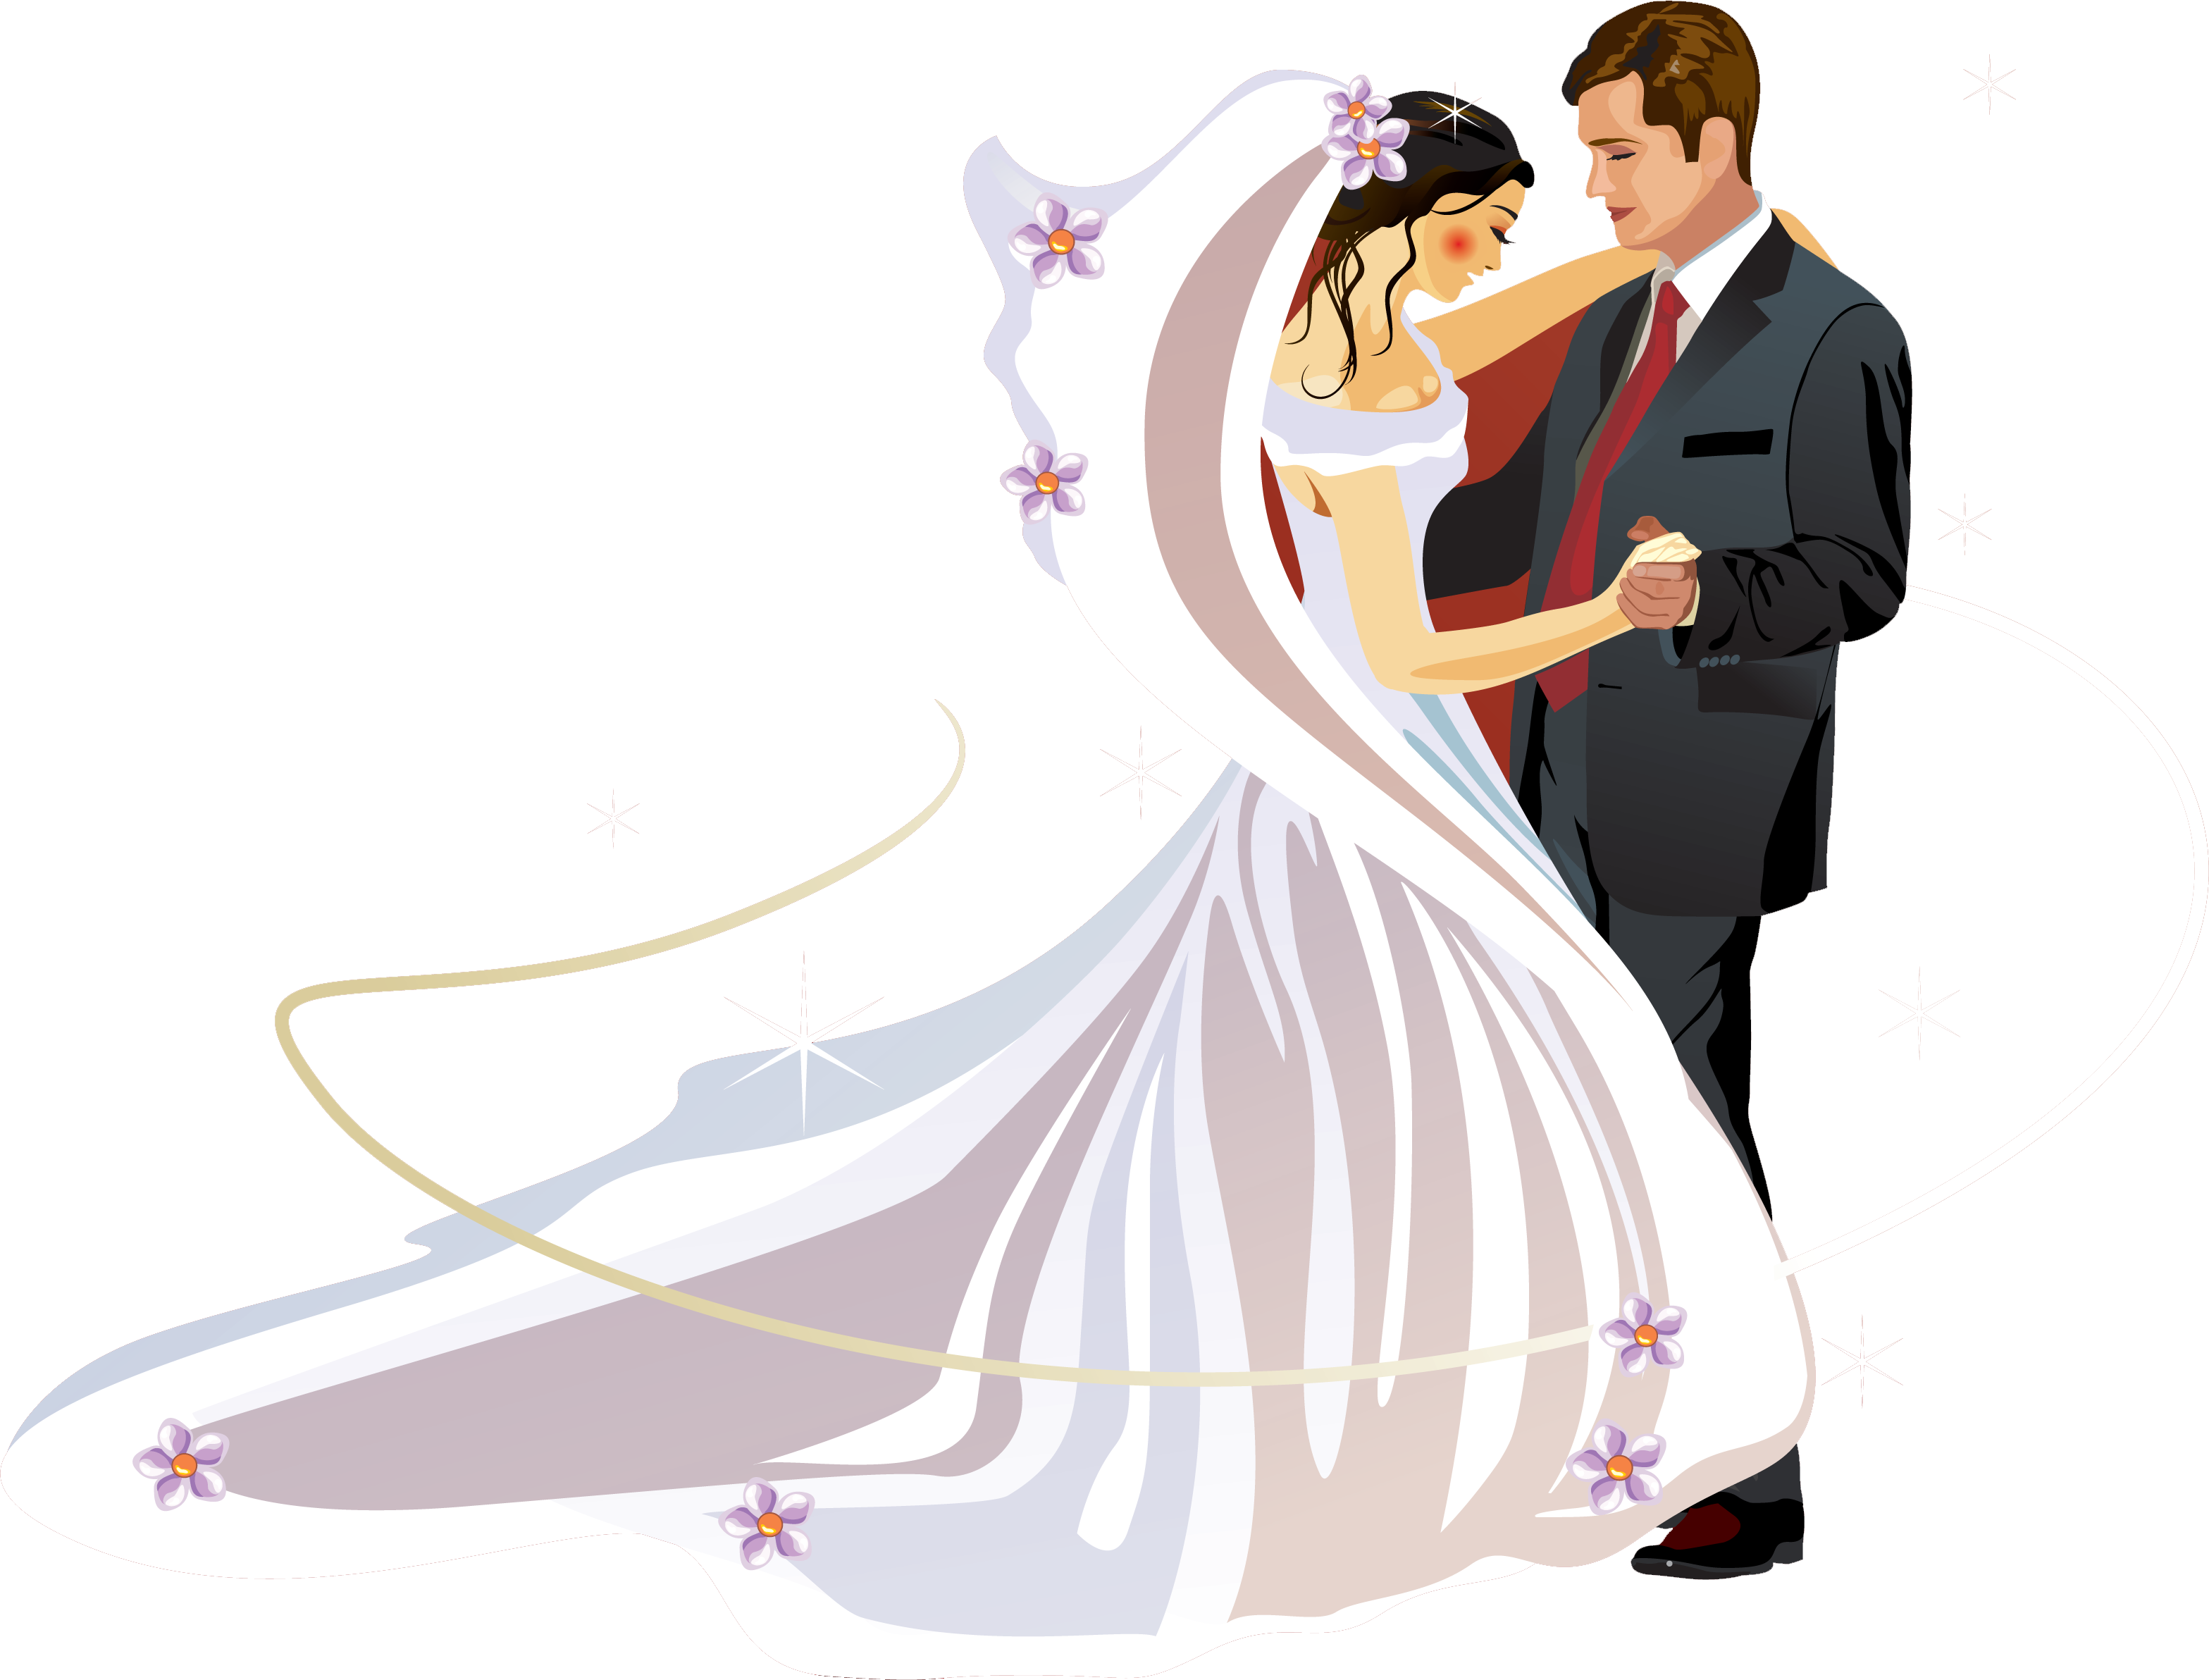 Wedding invitation bridegroom clip. Marriage clipart married couple